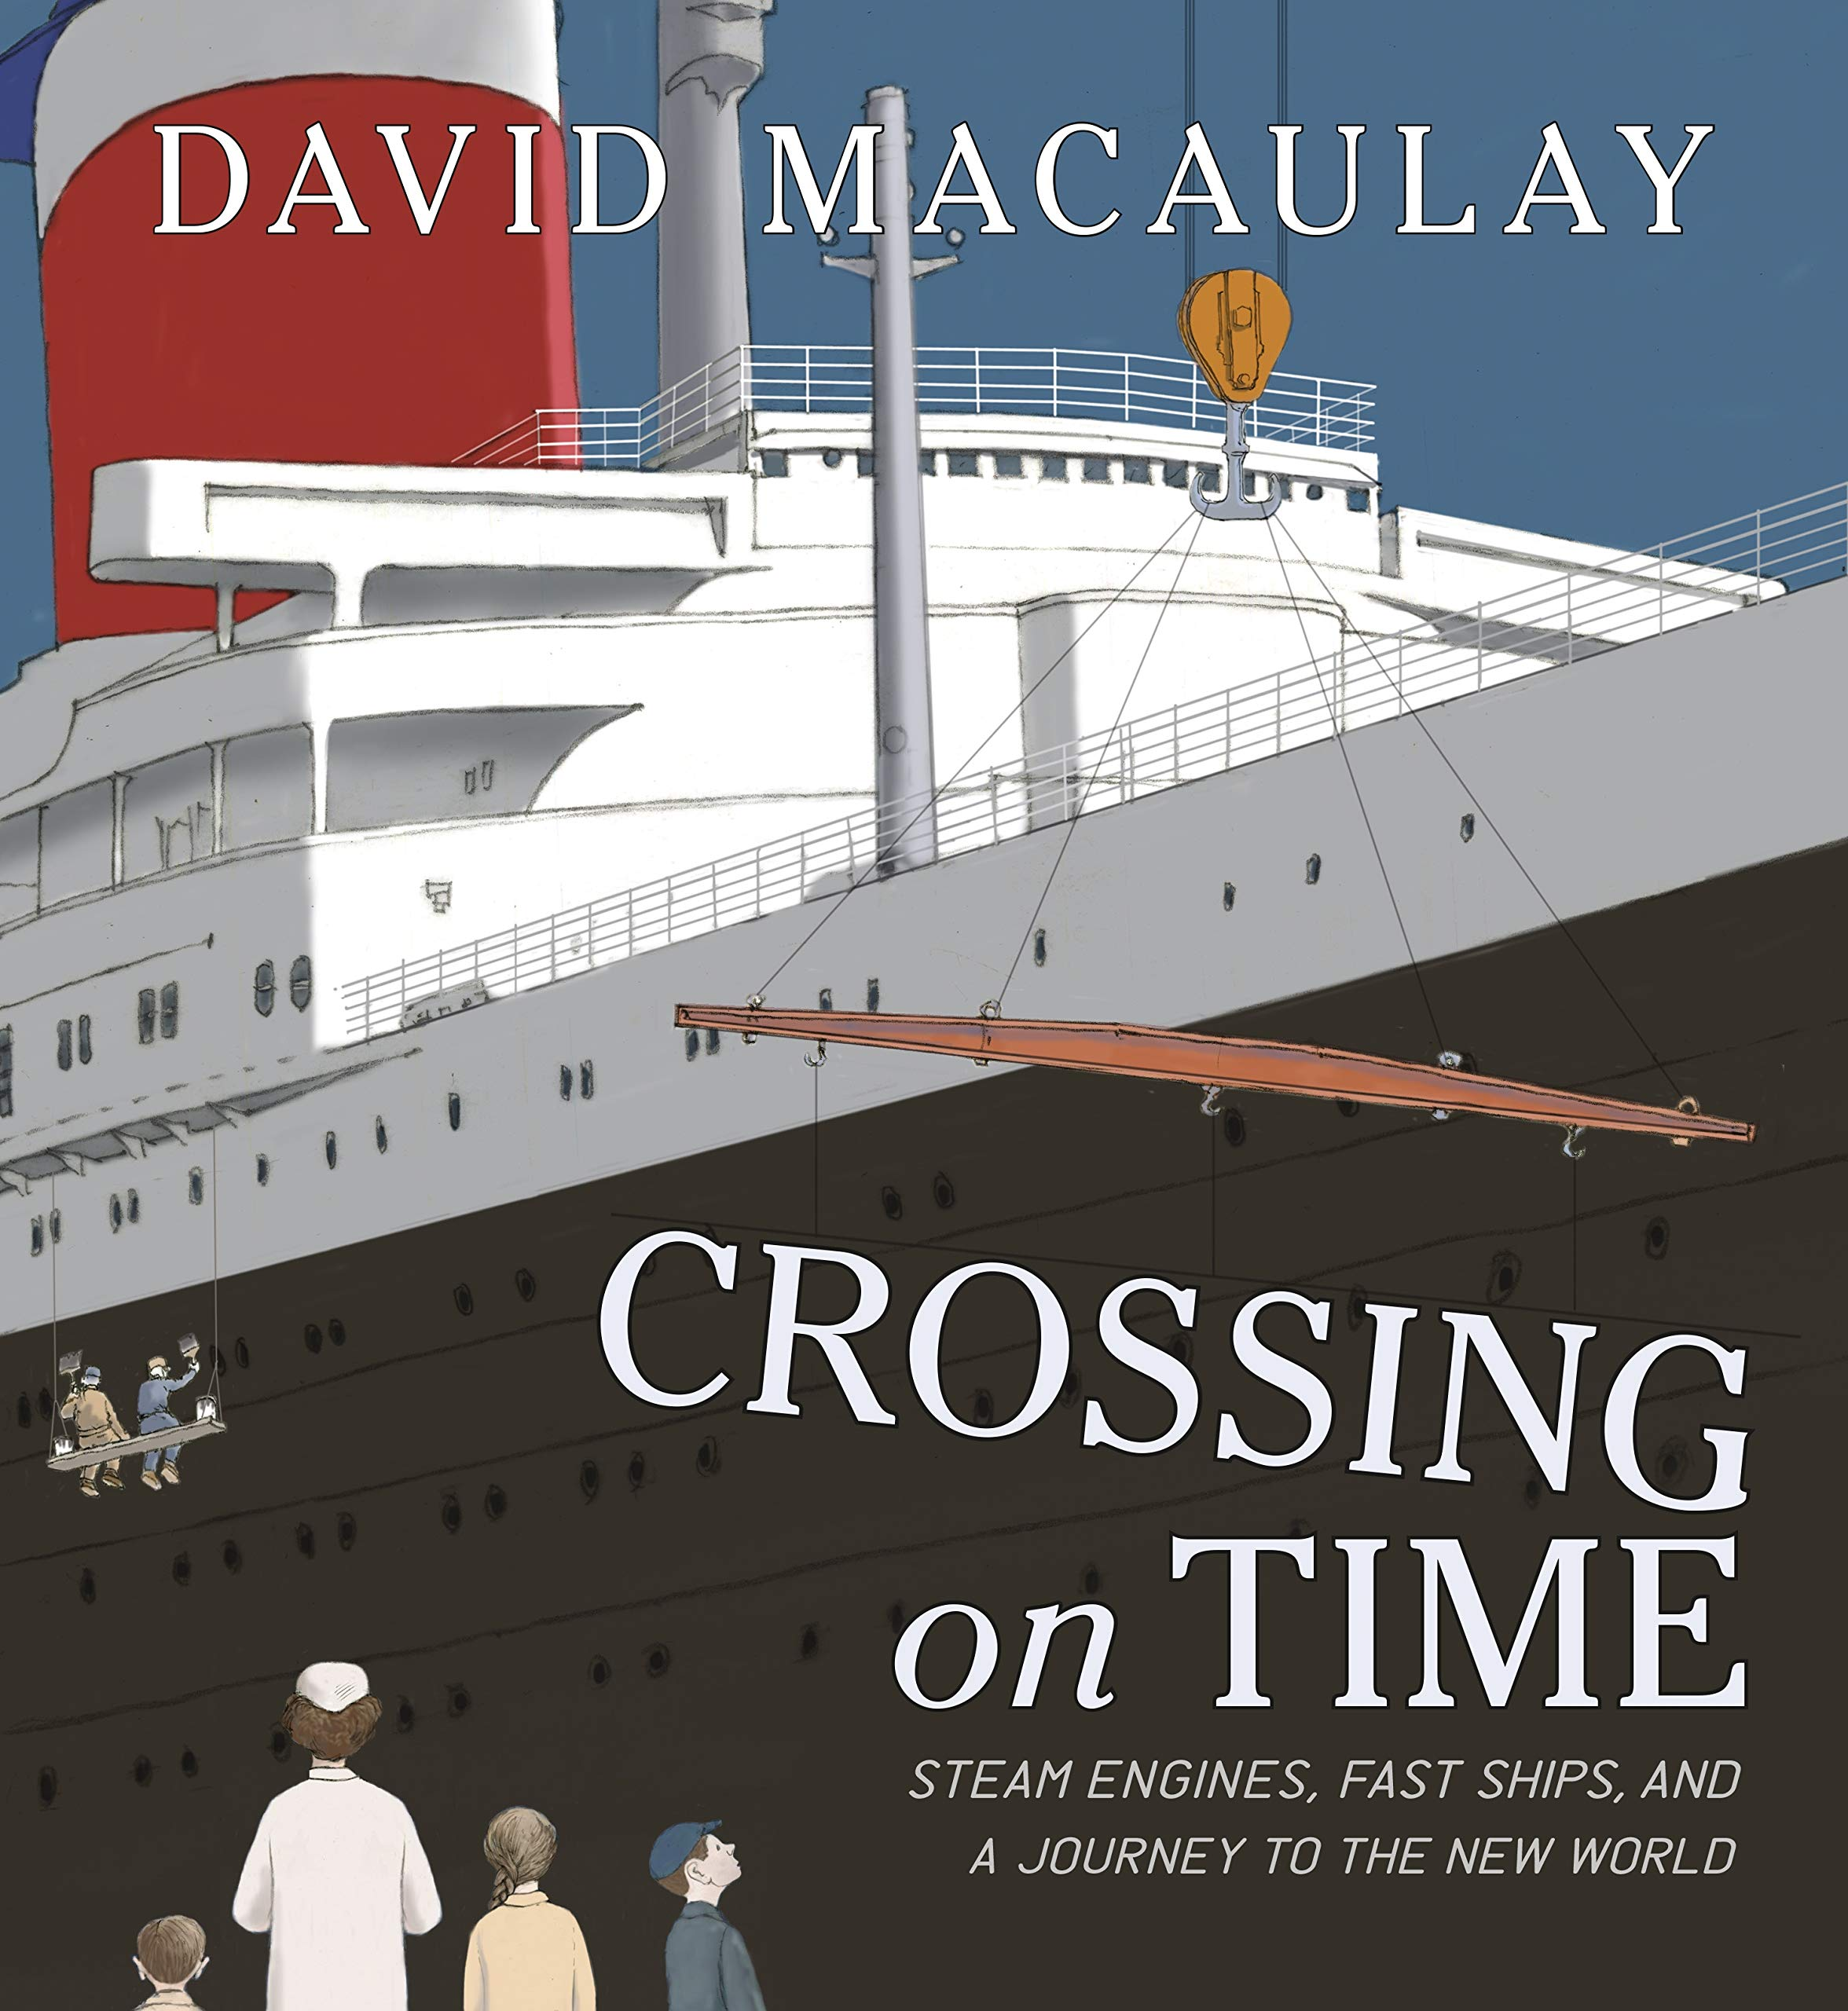 Image result for crossing on time macaulay amazon